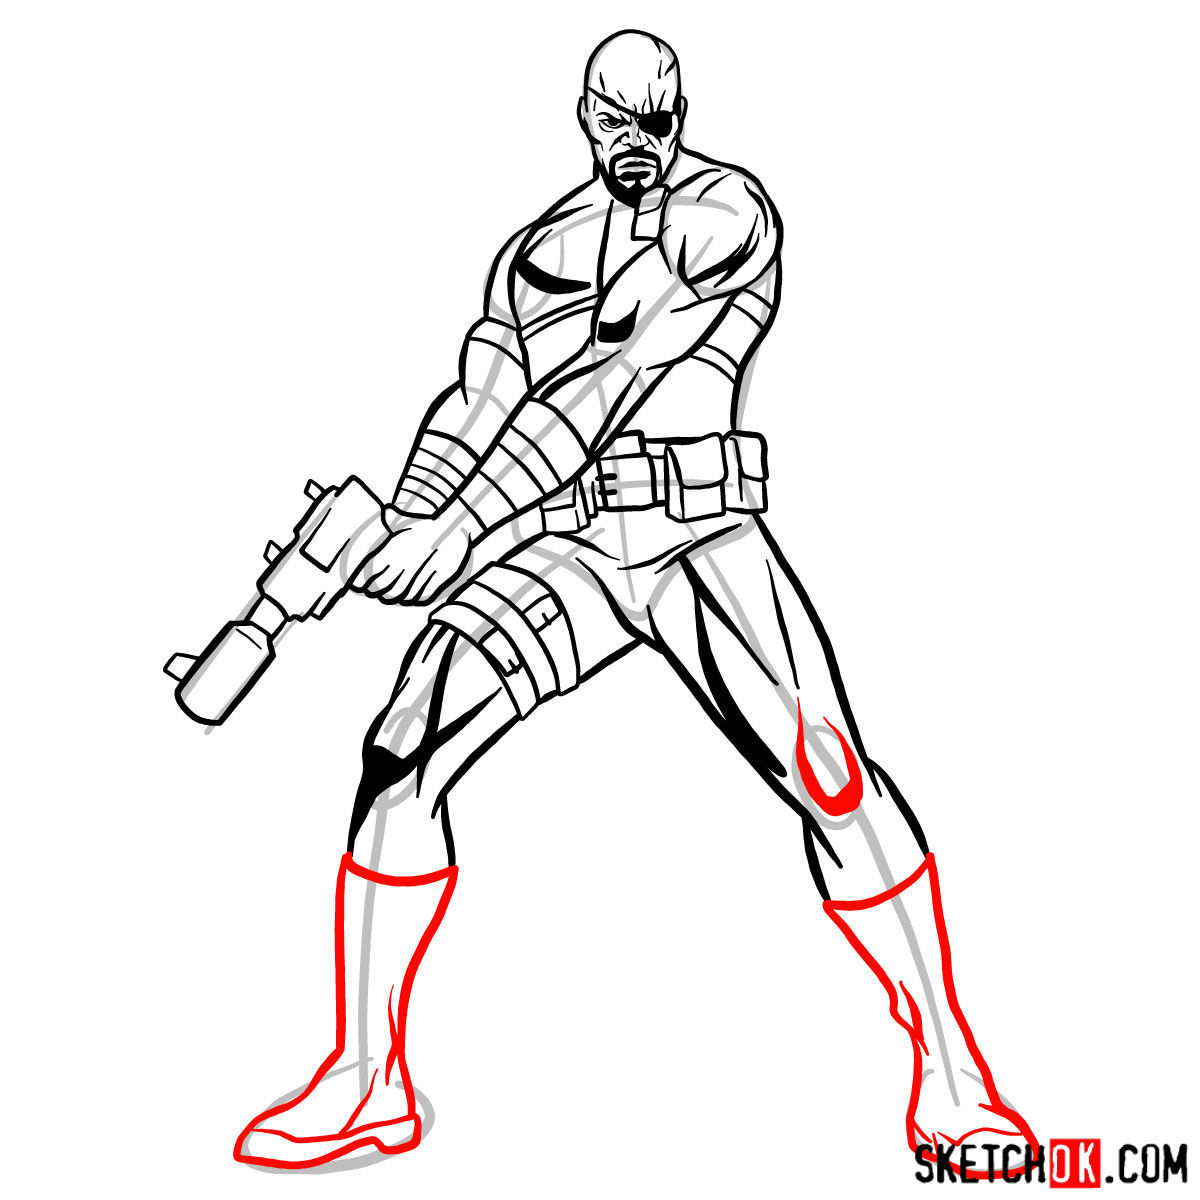 How to draw Nick Fury from the Avengers - step 13